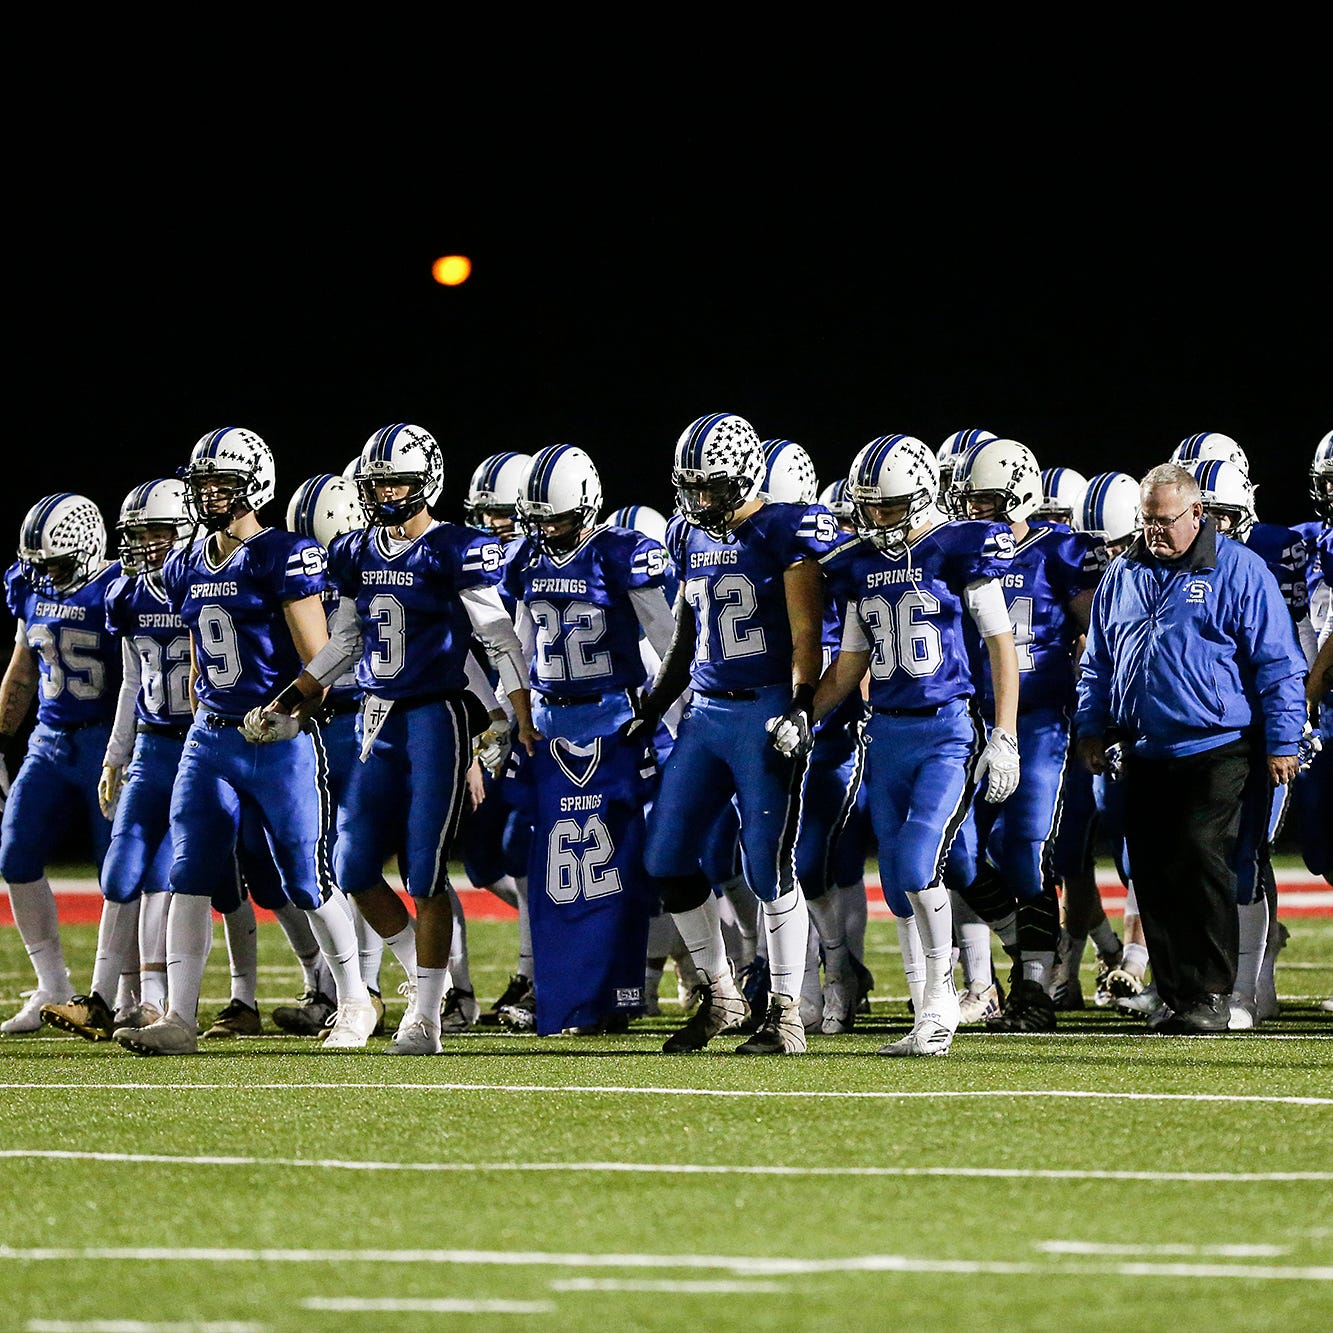 WIAA football: St. Mary's Springs gets emotional win in first round of playoffs